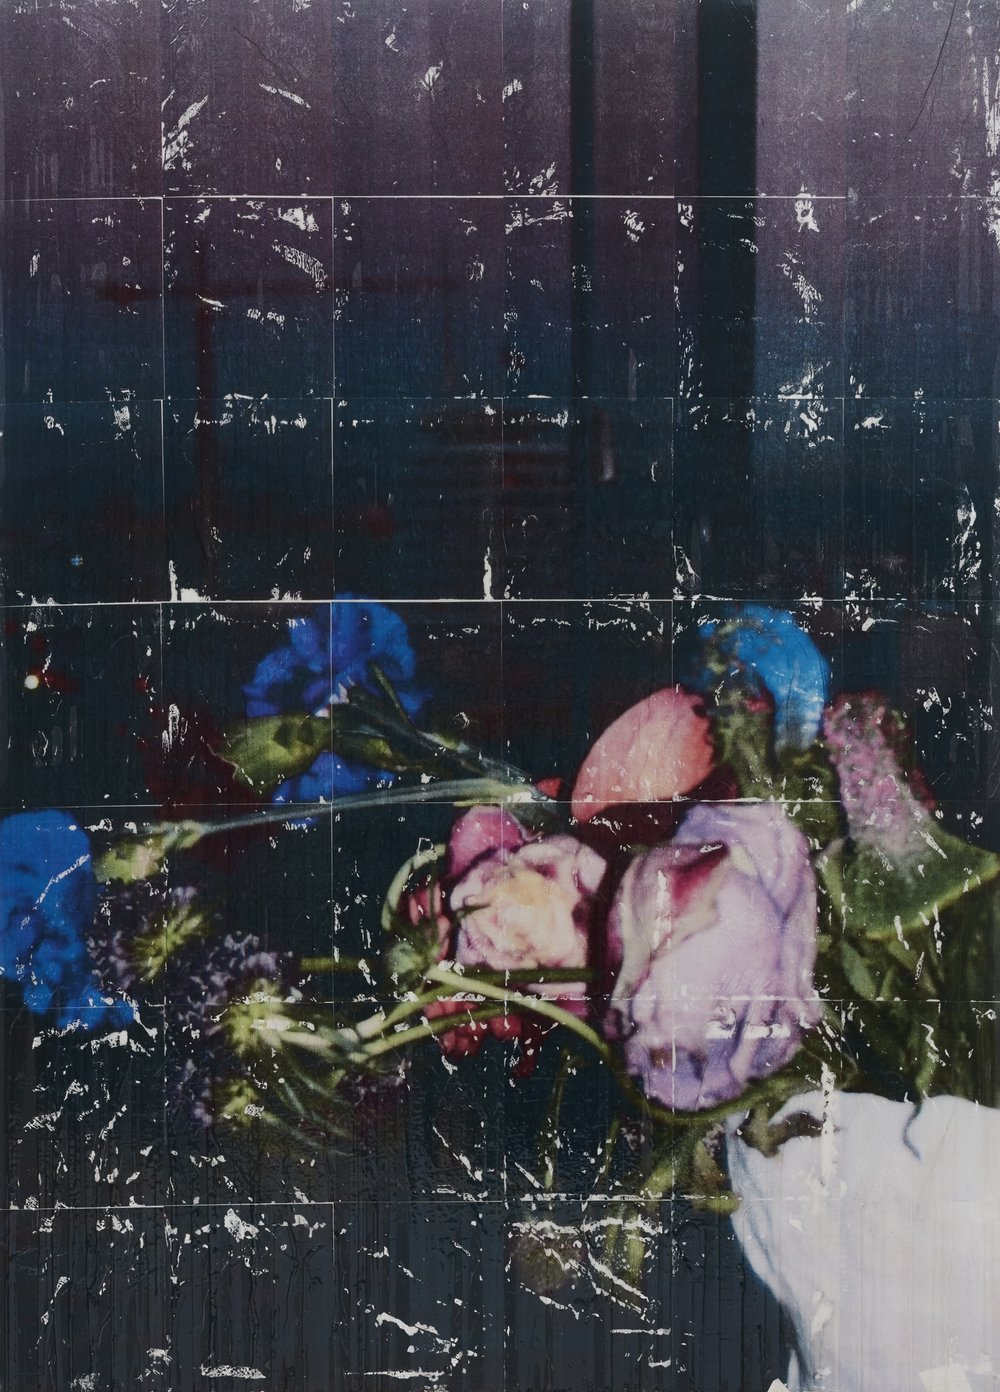 Parker Ito   Capitol Records Shit Toots (roses and carnations)  2016-17 Acrylic, toner and gloss varnish on linen 117 x 162,5 x 2,5 cm